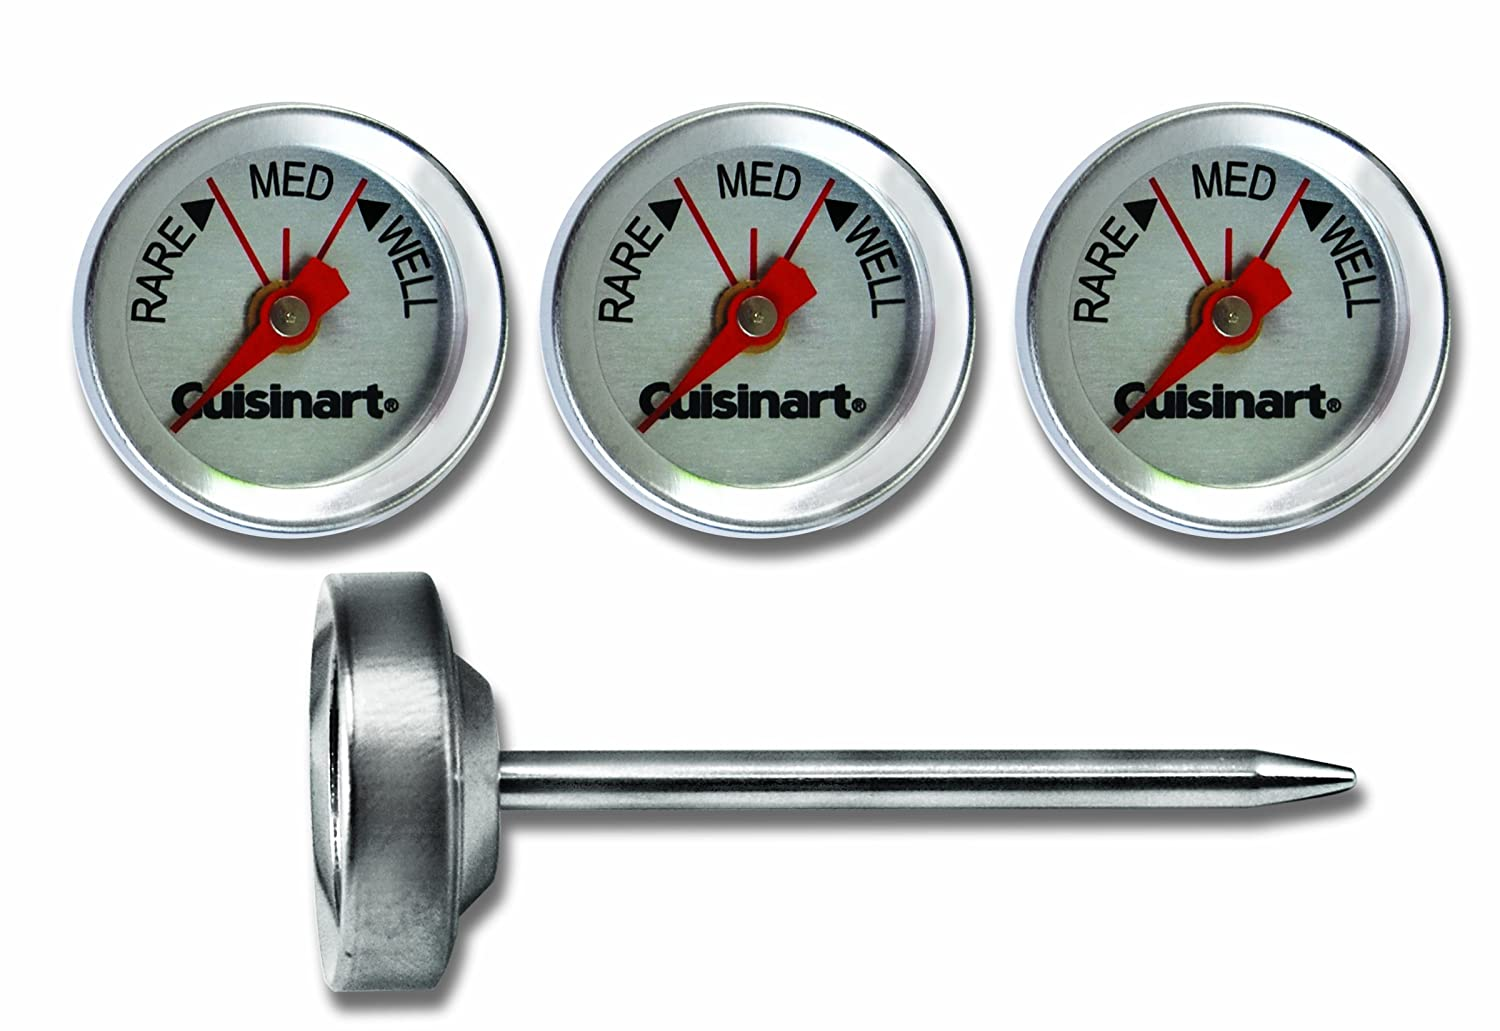 Cuisinart CSG-603Outdoor Grilling Steak Thermometers (Set of 4) , Stainless Steel